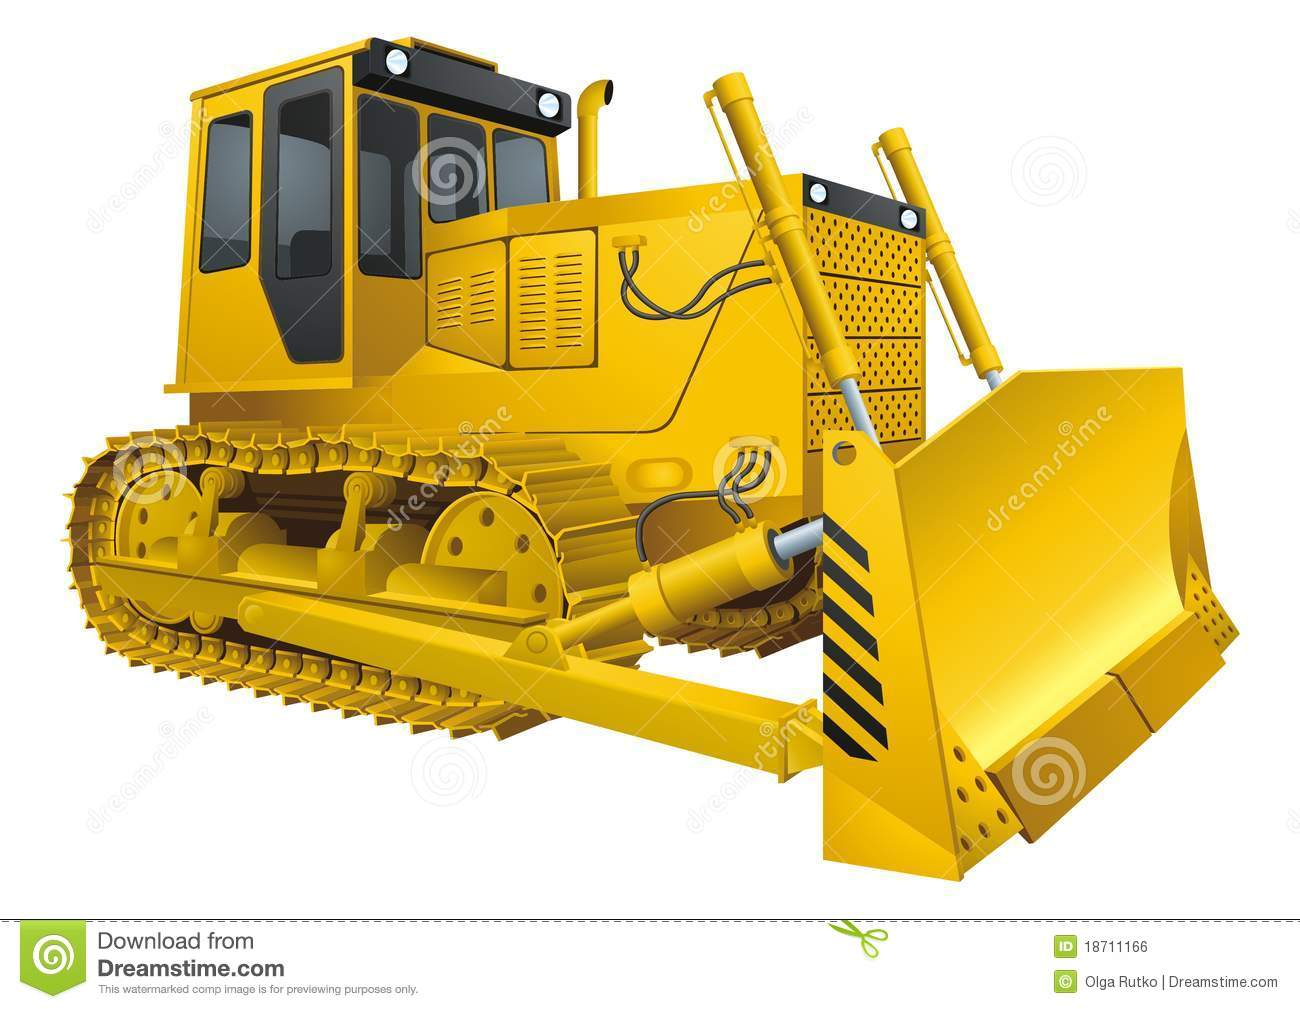 Bulldozer Royalty Free Stock Image - Image: 18711166